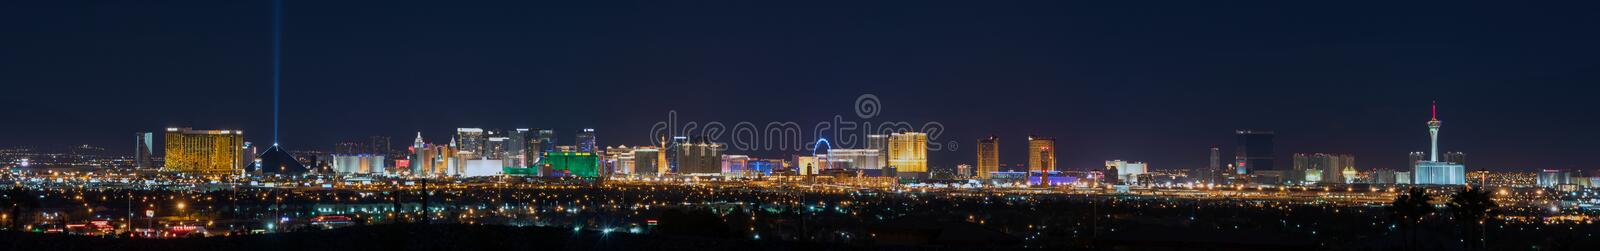 Las Vegas Skyline. Panoramic shot of Las Vegas from the beginning to the end of the strip